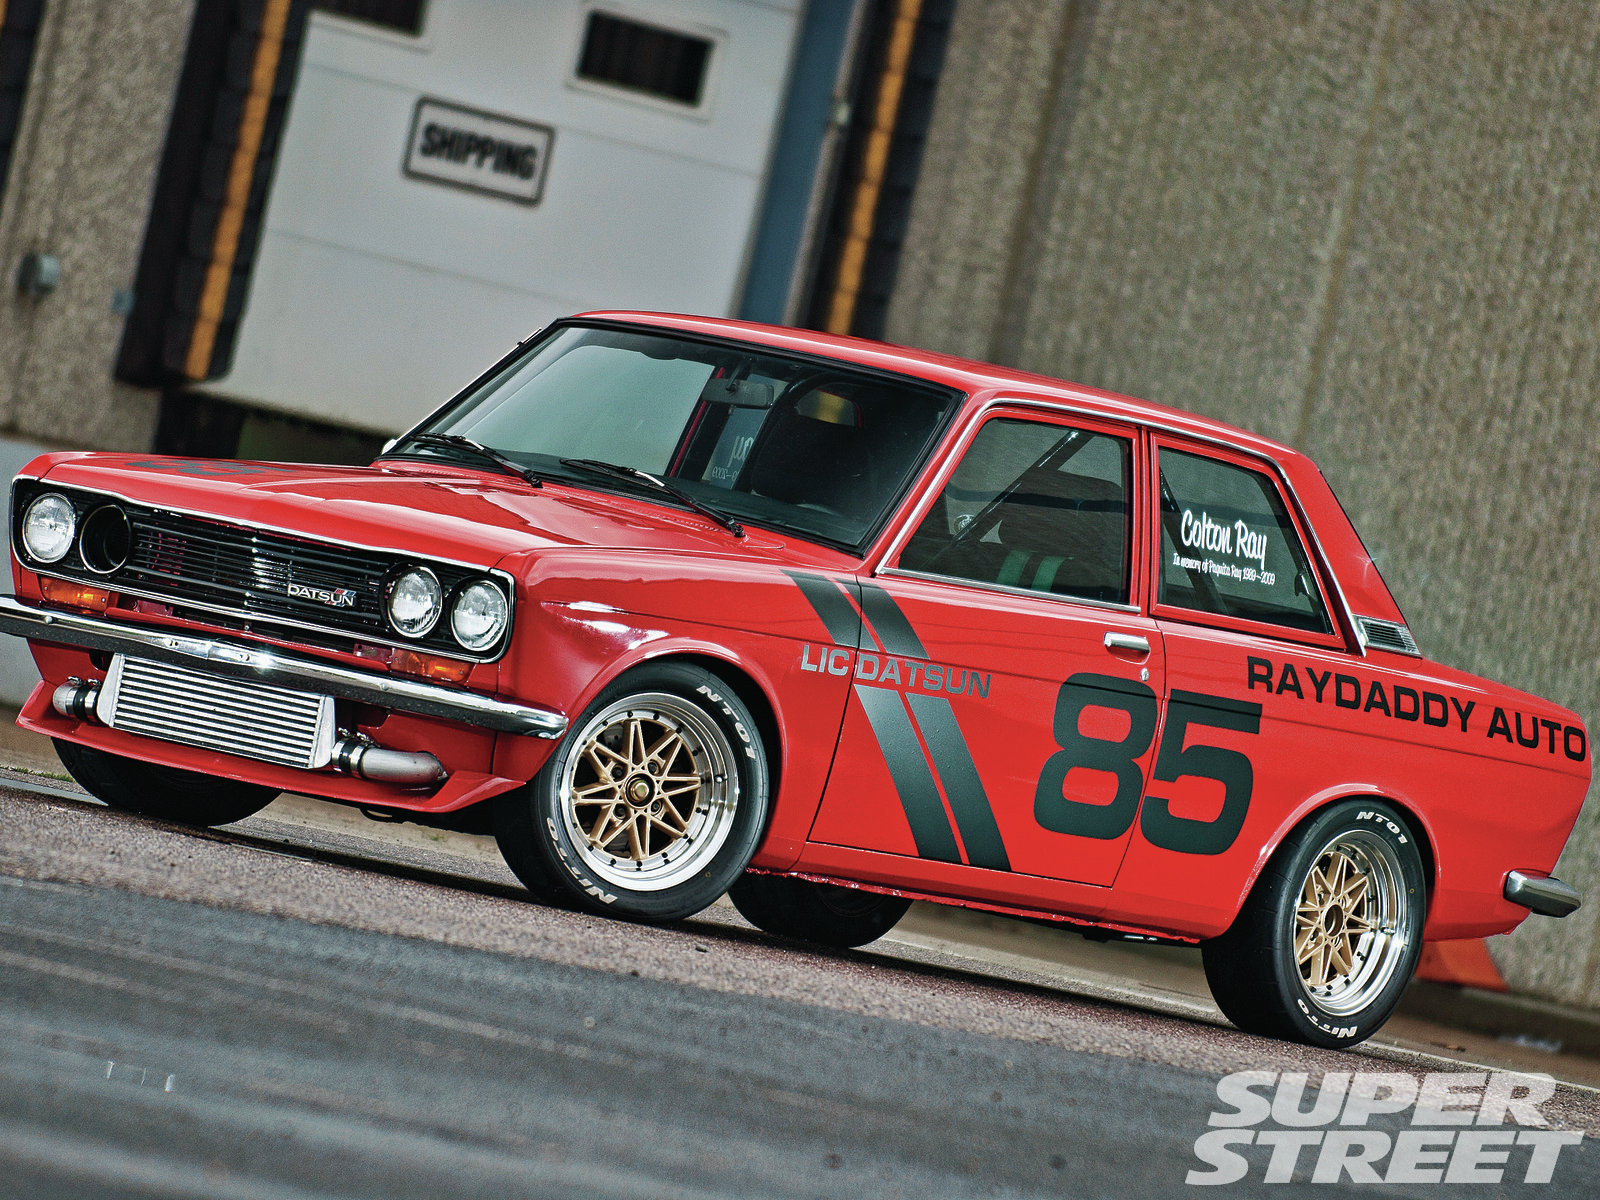 Datsun 510 wallpaper 1600x1200 8081 1600x1200